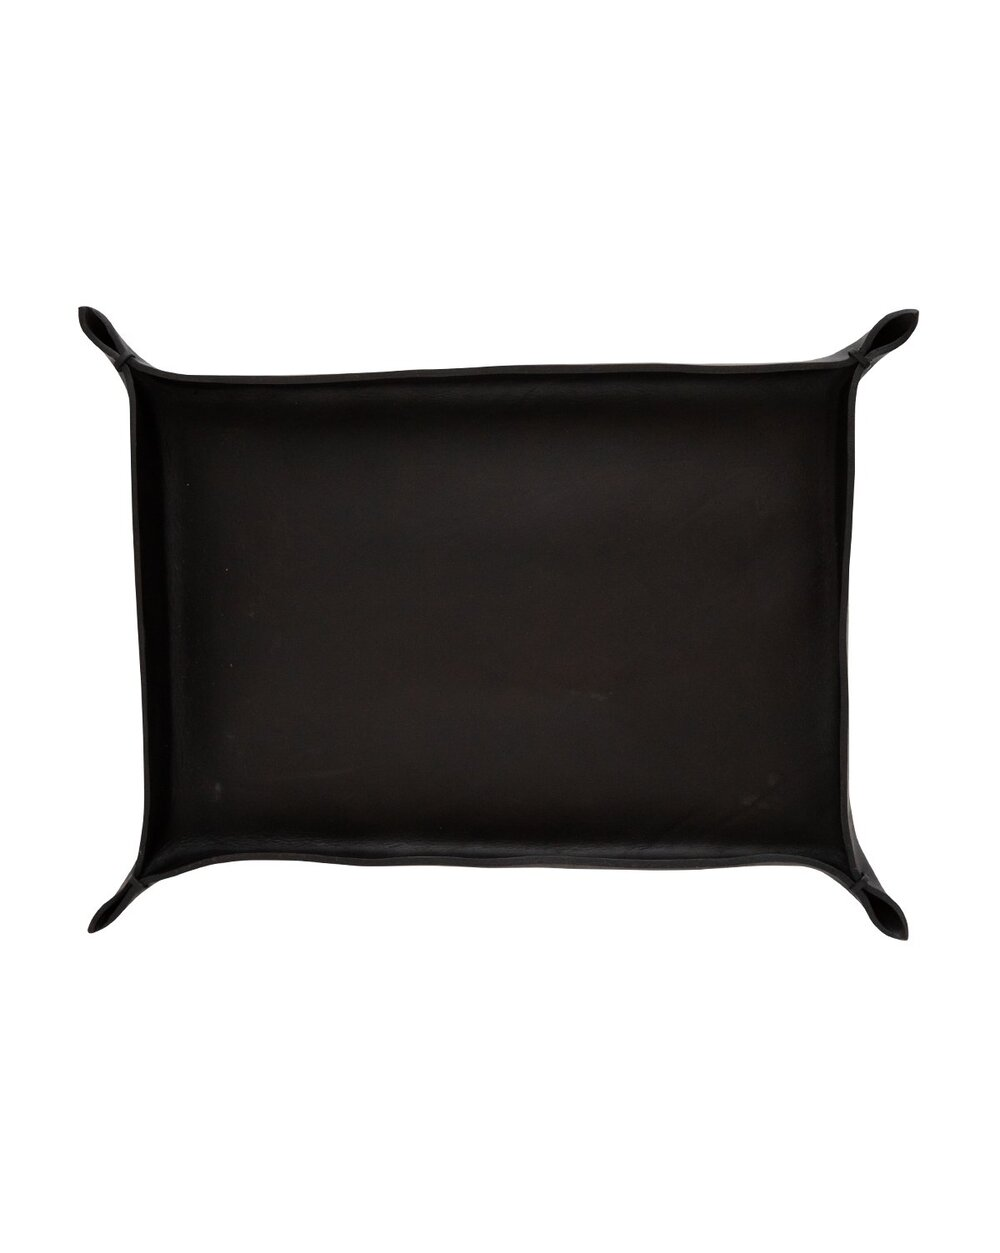 Leather_Crafted_Tray_01.jpg